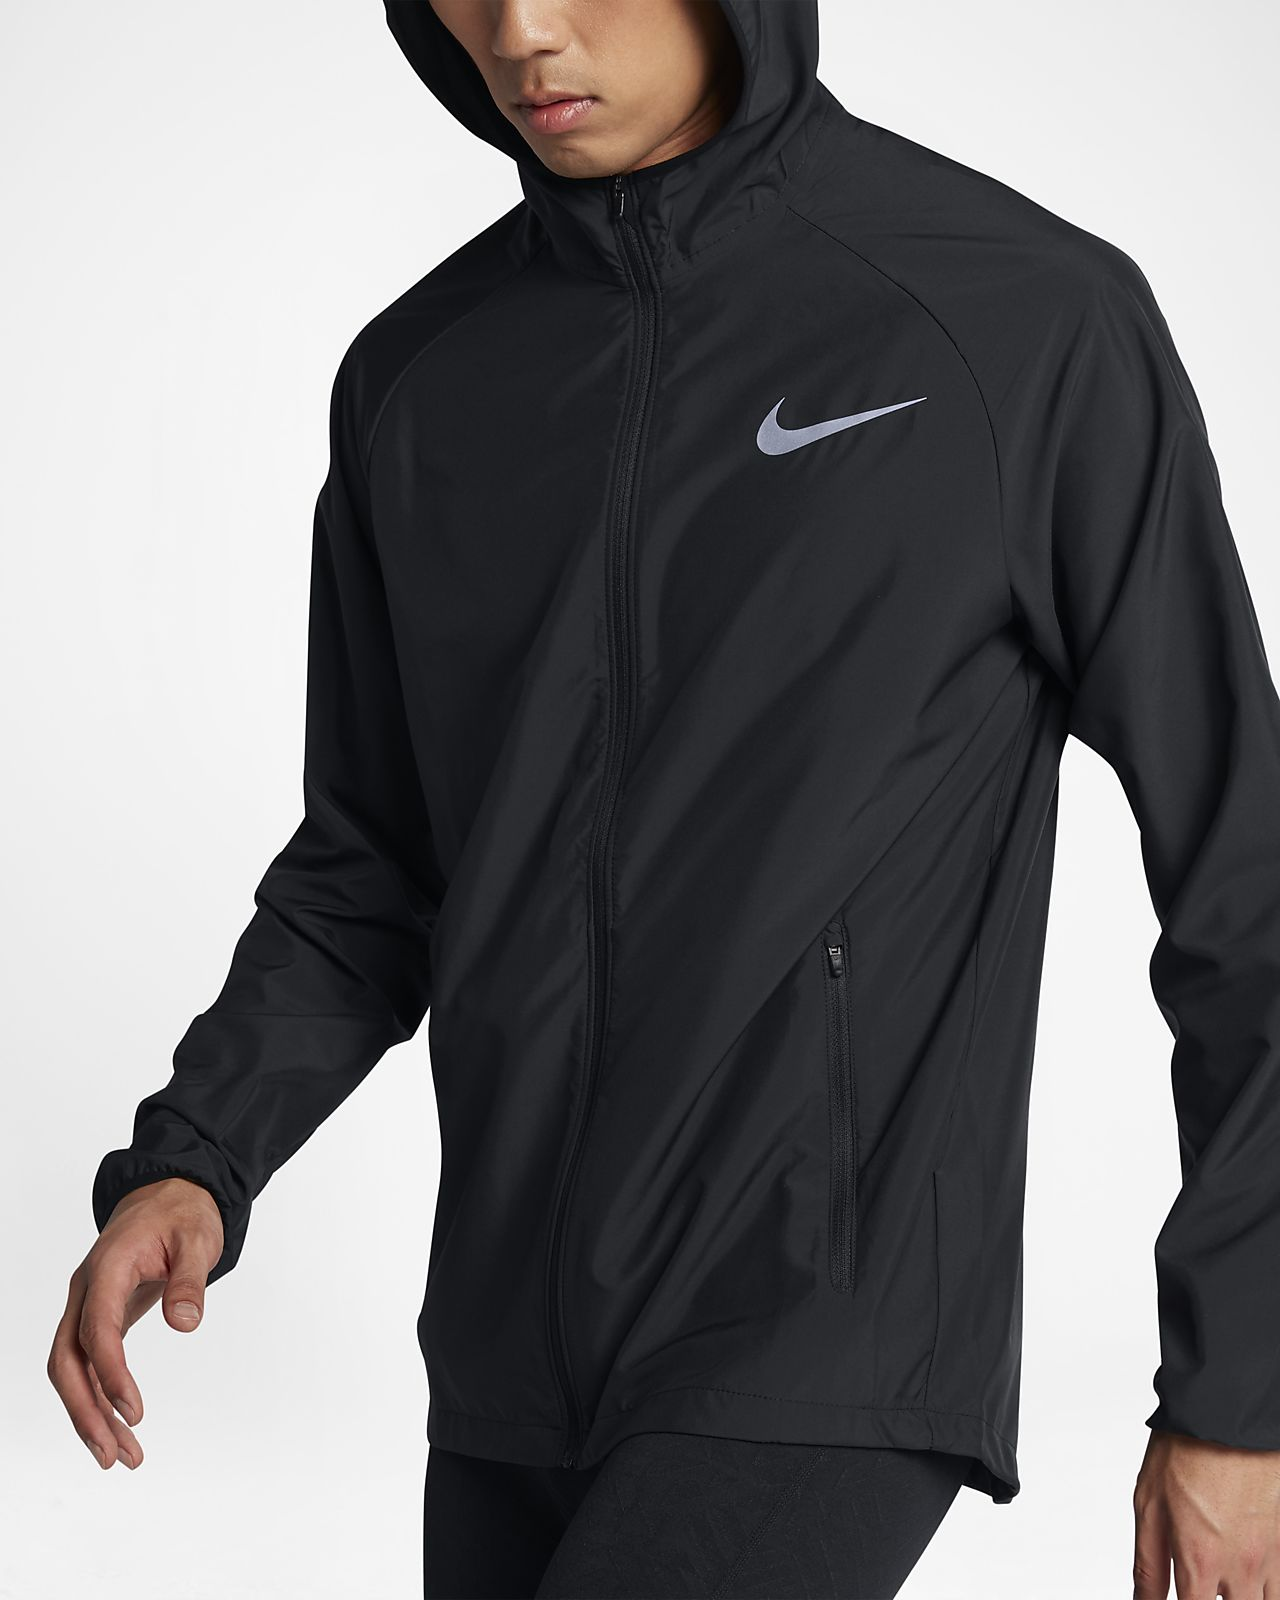 3eccd5a69bc5 Low Resolution Nike Essential Men s Running Jacket Nike Essential Men s  Running Jacket